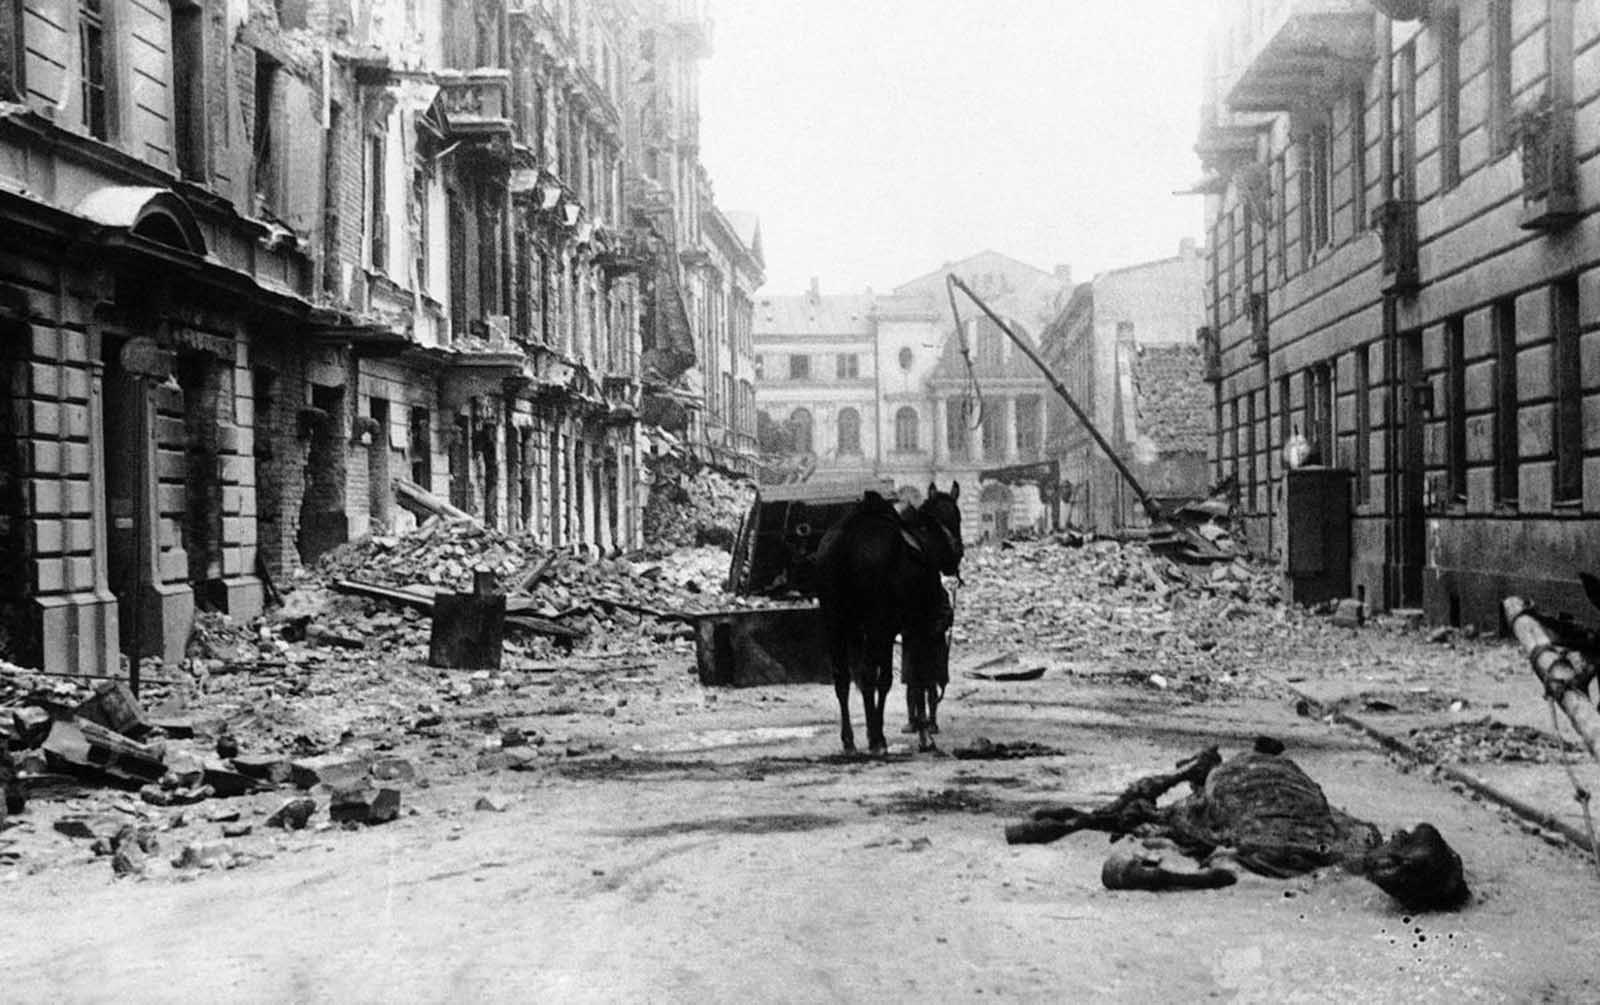 The scene of devastation seen on Ordynacka Street in Warsaw, Poland on March 6, 1940. The carcass of a dead horse lies in the street among enormous piles of debris. While Warsaw was under nearly constant bombardment during the invasion, on one day alone, September 25, 1939, about 1,150 bombing sorties were flown by German aircraft against Warsaw, dropping over 550 tons of high explosive and incendiary bombs on the city.